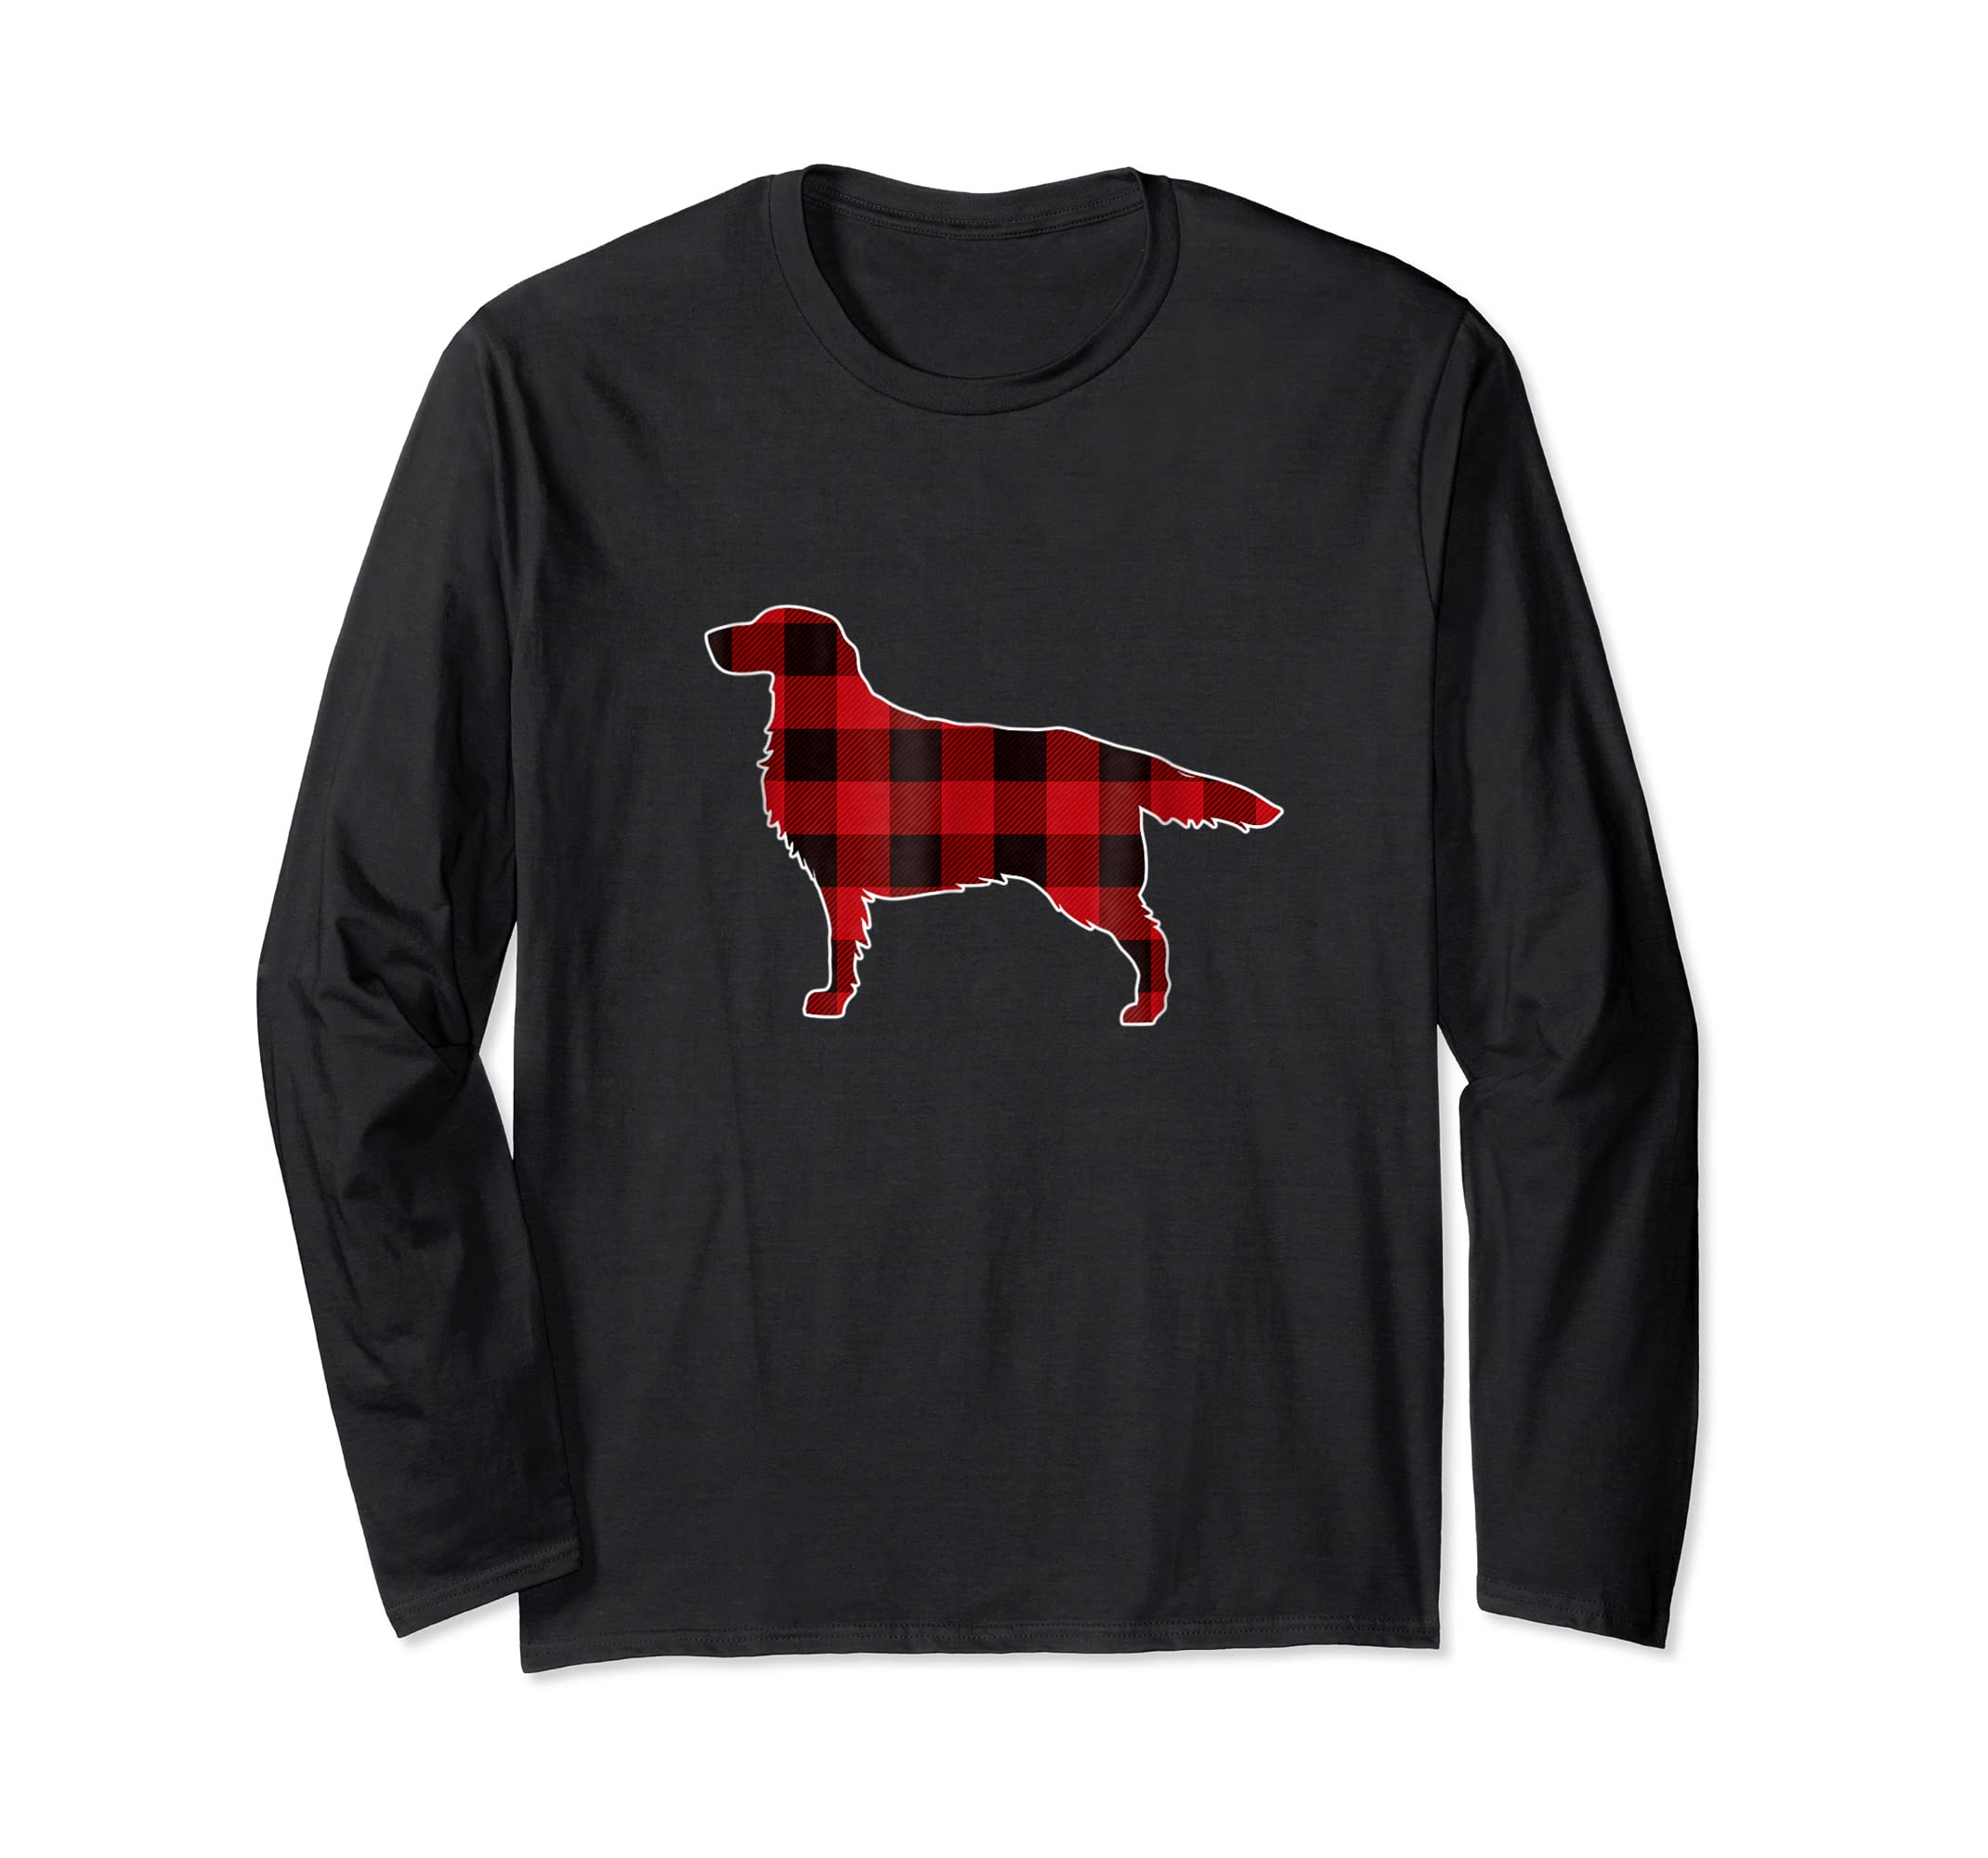 Golden Retriever Christmas T-Shirt Dog Buffalo Plaid Tee-Long Sleeve-Black